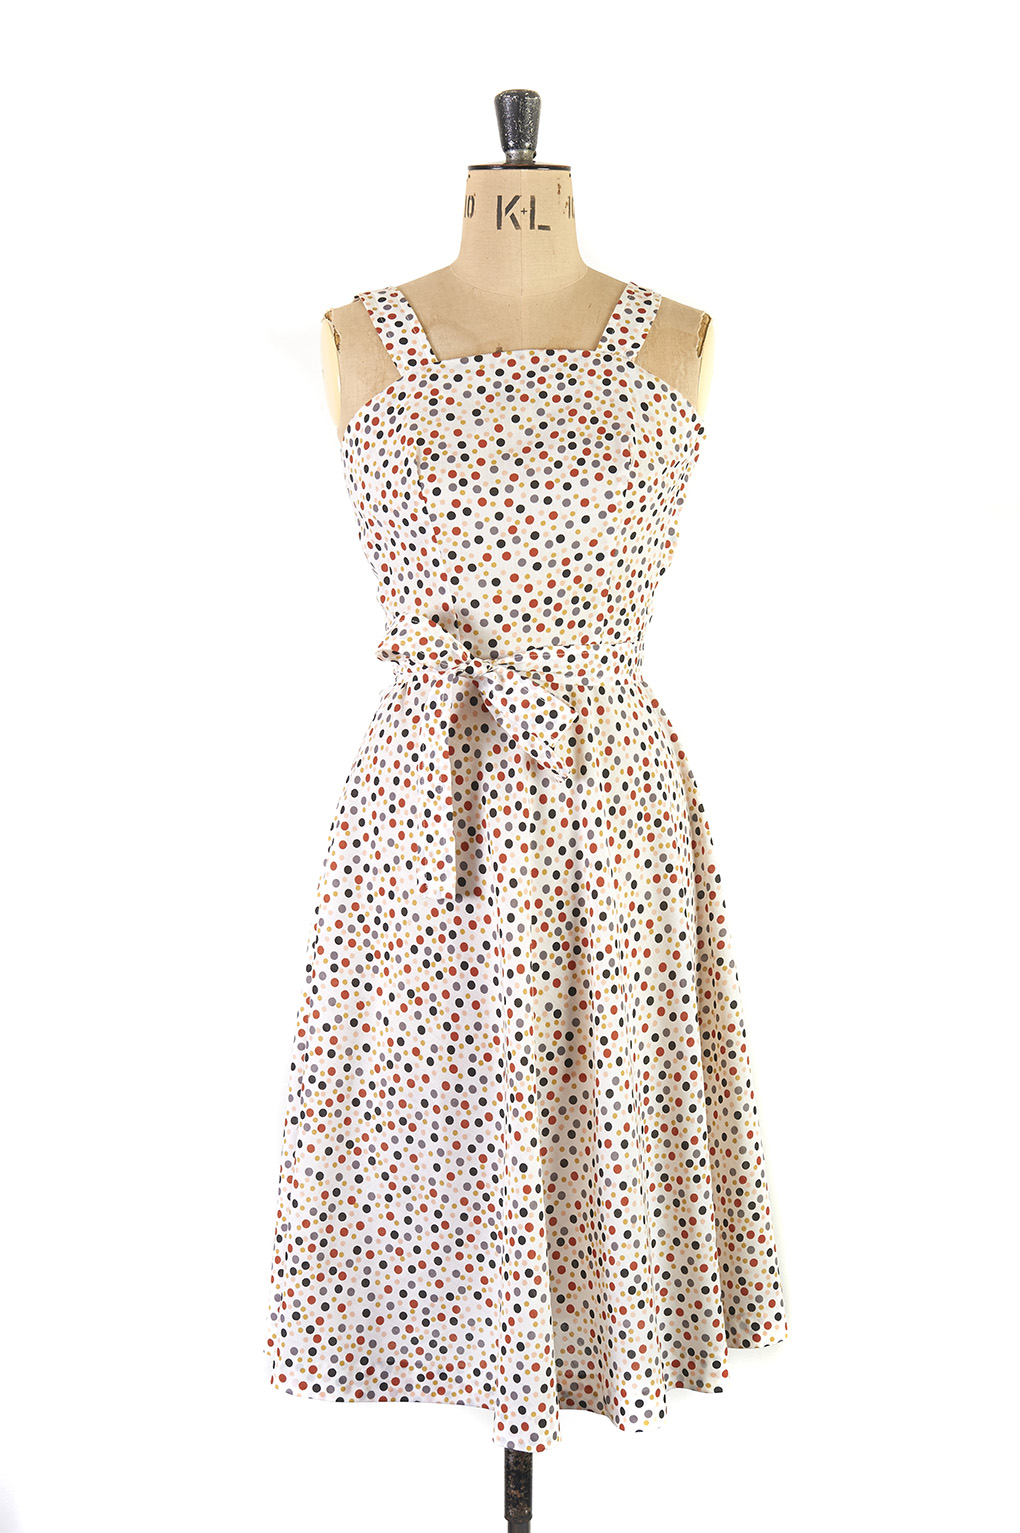 Spotty Horrockses Summer Dress